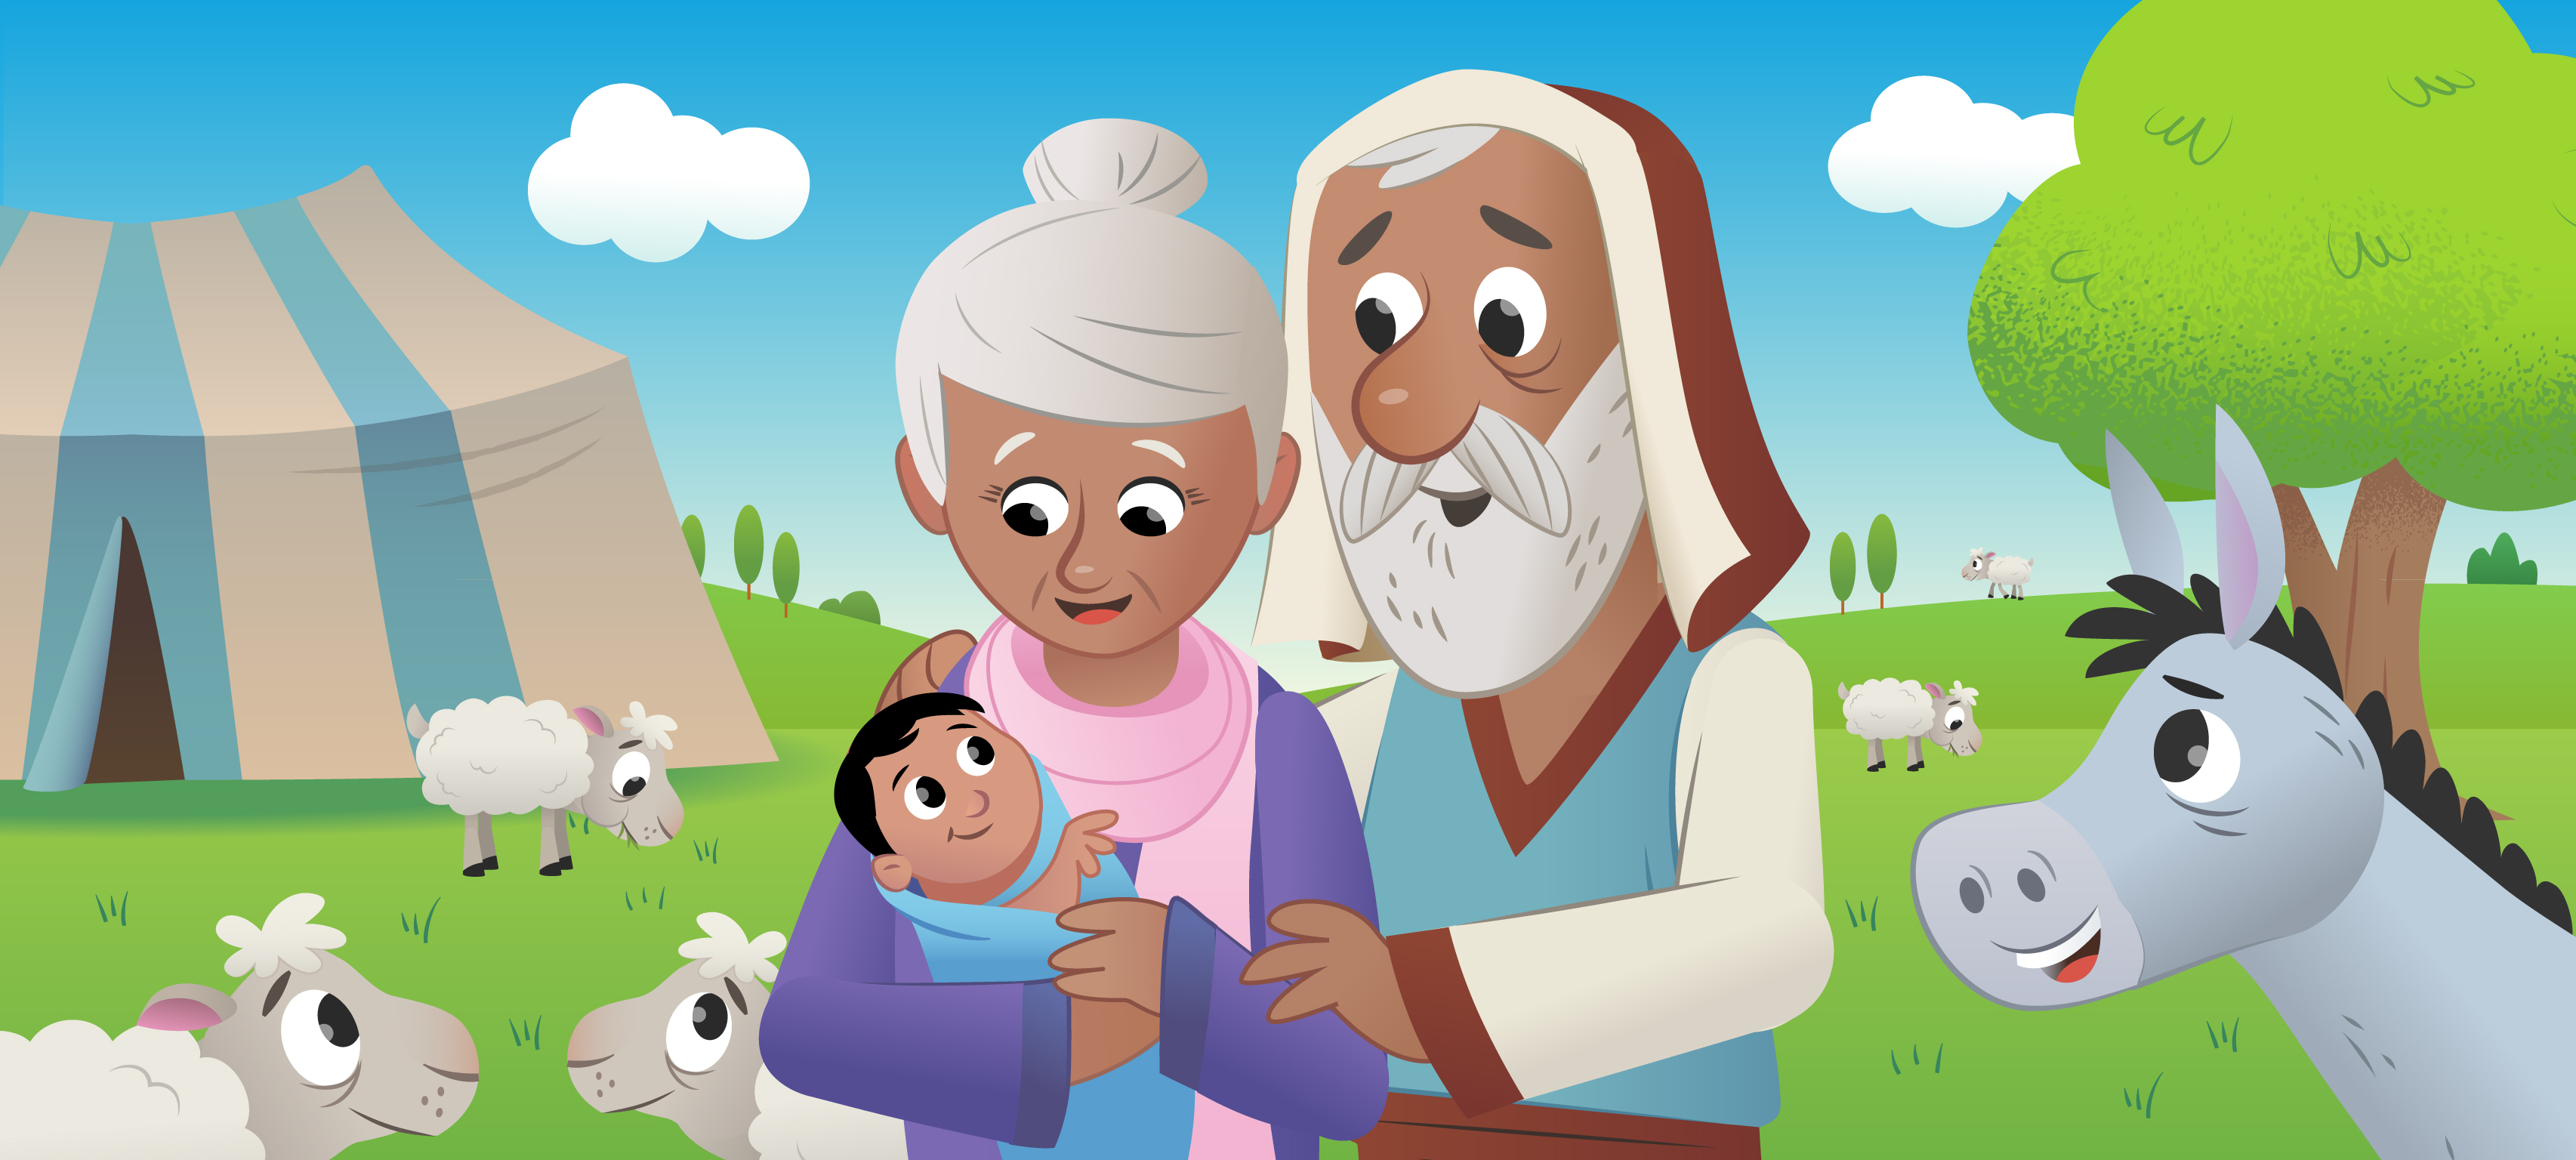 Two New Stories and a New Collectible Set for Kids - YouVersion